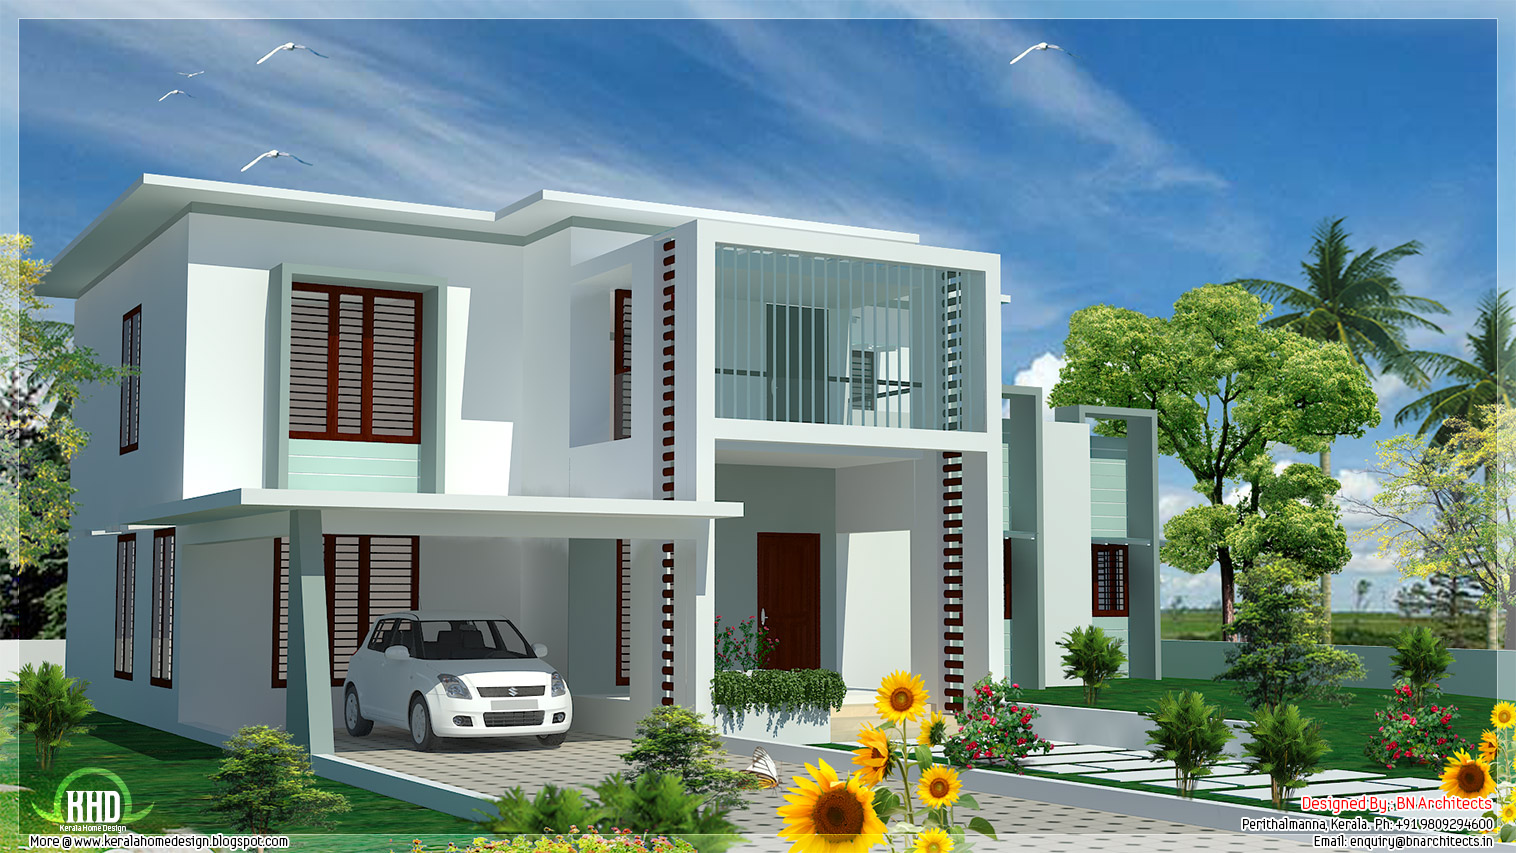 4 Bedroom Modern Flat Roof House Kerala Home Design And Floor Plans